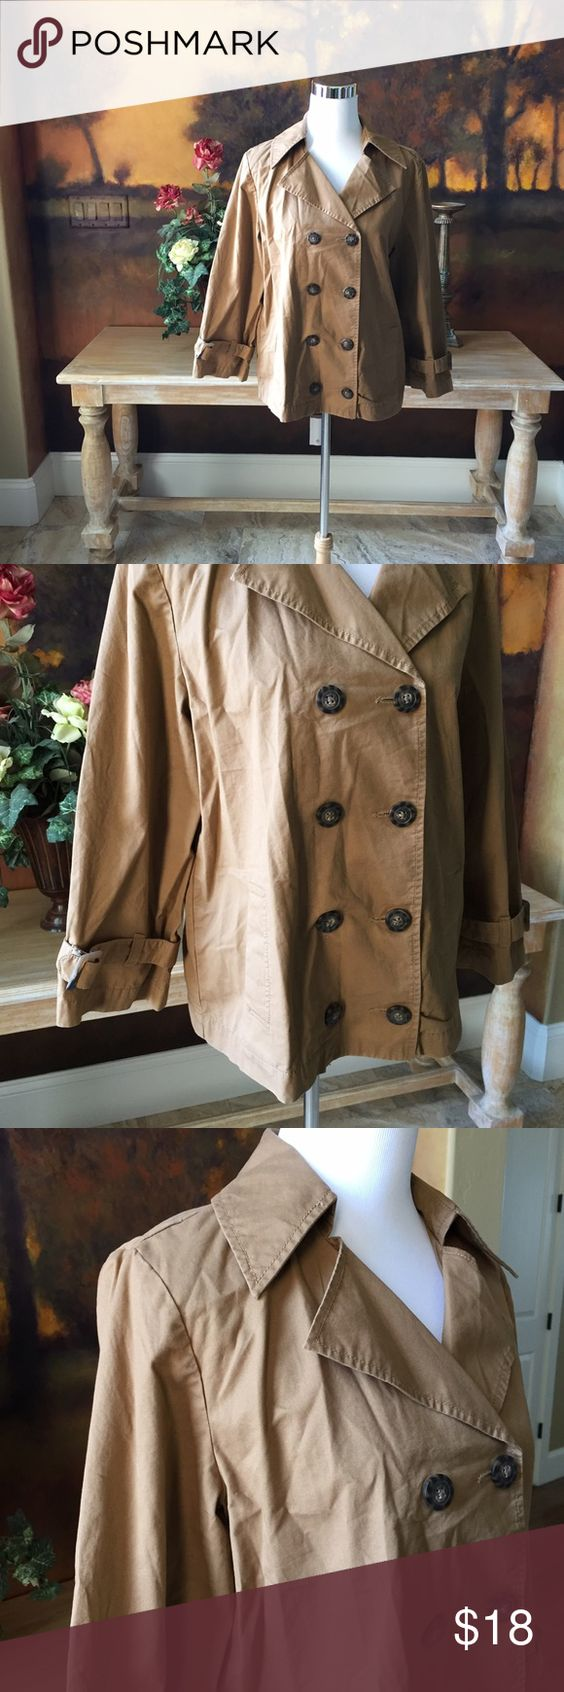 Jacket by Old Navy Tan lite weight material jacket in excellent condition. Like new, no rips or stains. Old Navy Jackets & Coats